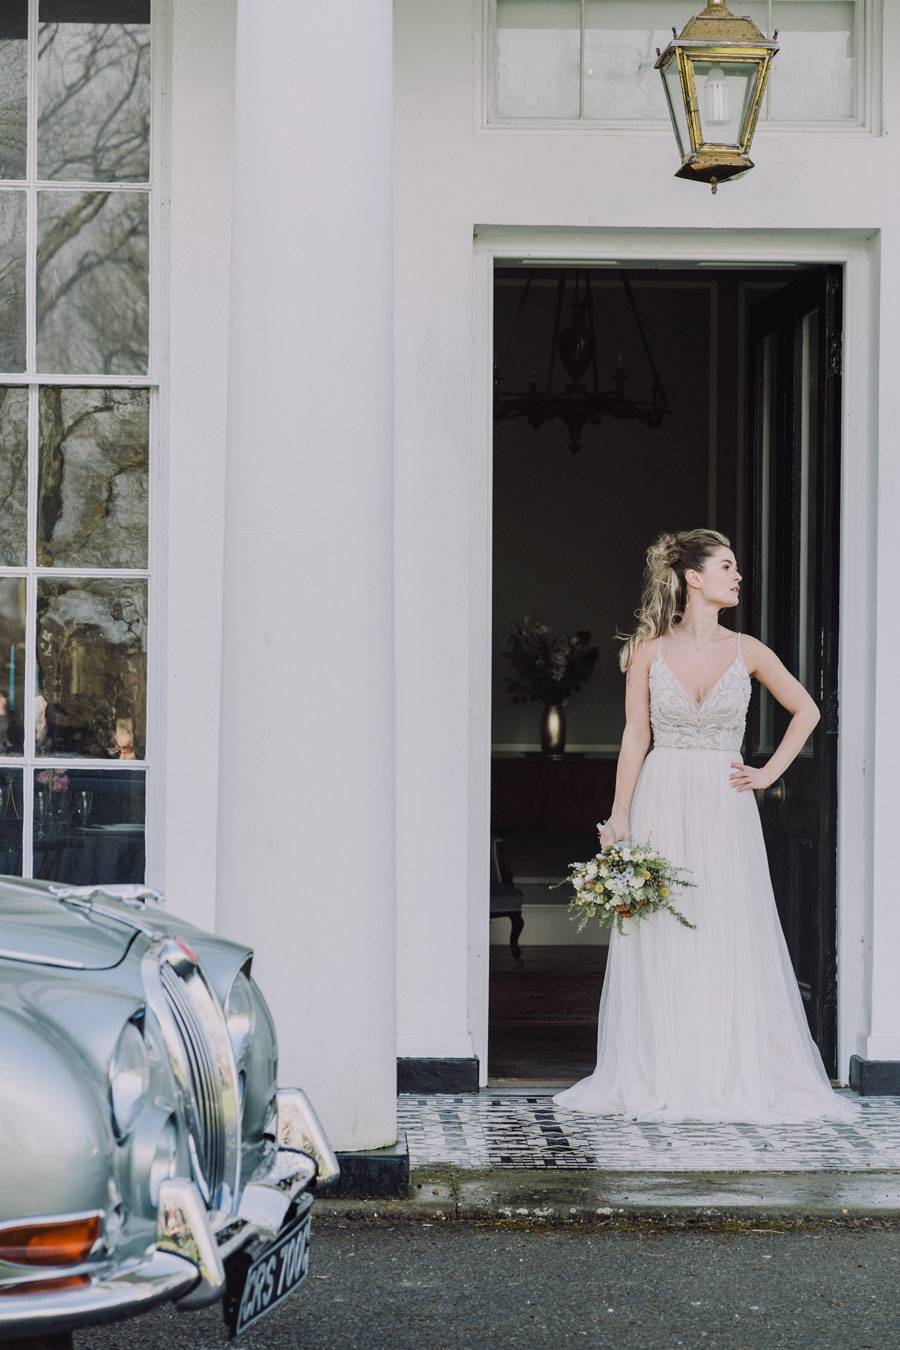 Moreton House Styled Shoot in North Devon, images by Anthony Lyons Special Day Wedding Photos (21)